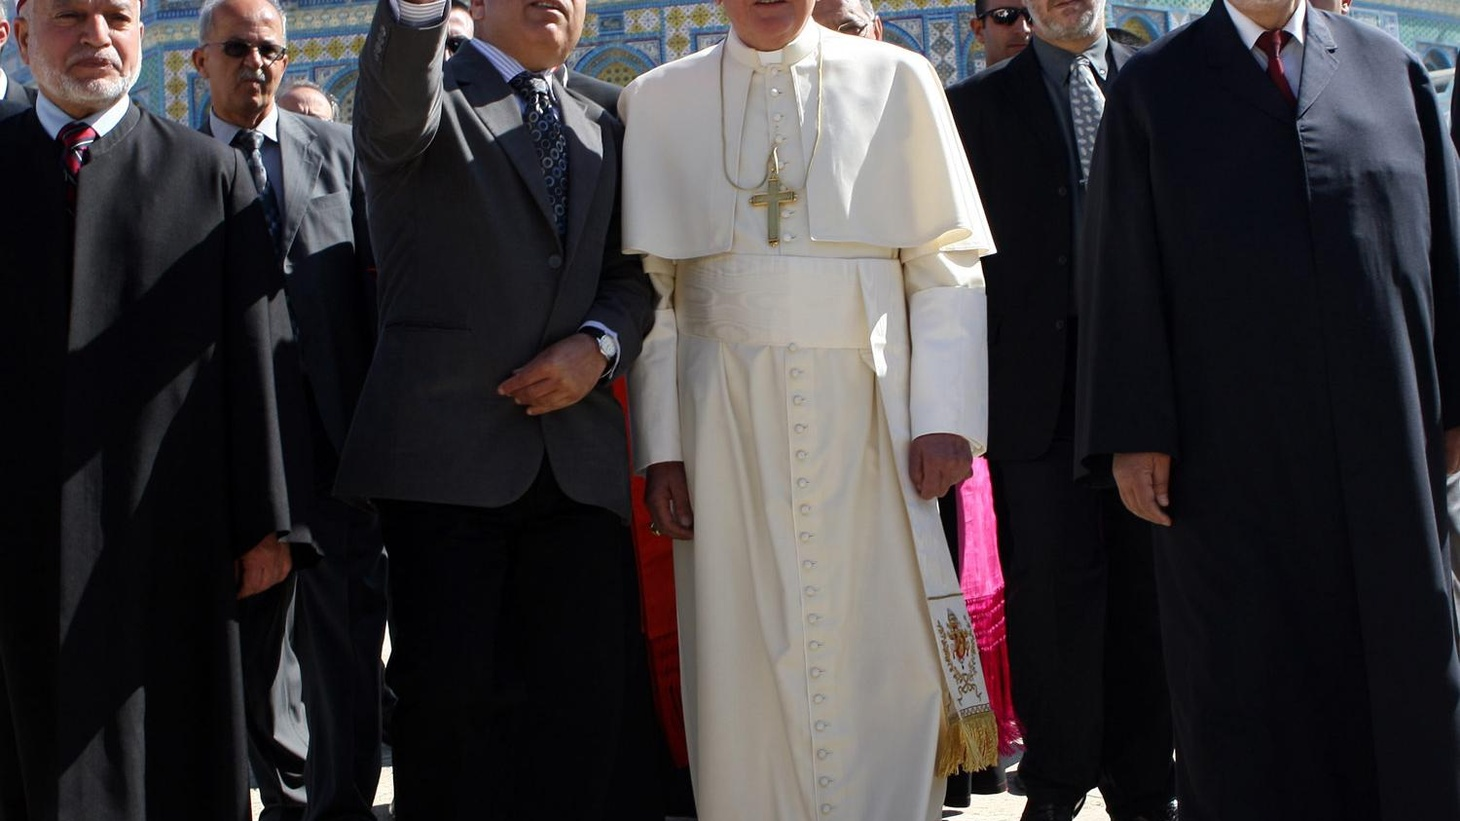 This week's pilgrimage to the Holy Land by Pope Benedict XVI has turned somewhat contentious. We hear the assessments of Jews, Palestinians and Roman Catholic Christians. Also, Richard Holbrooke testifies before Senate Foreign Relations Committee, and repairing the Hubble, a risky mission with an extraordinary goal.